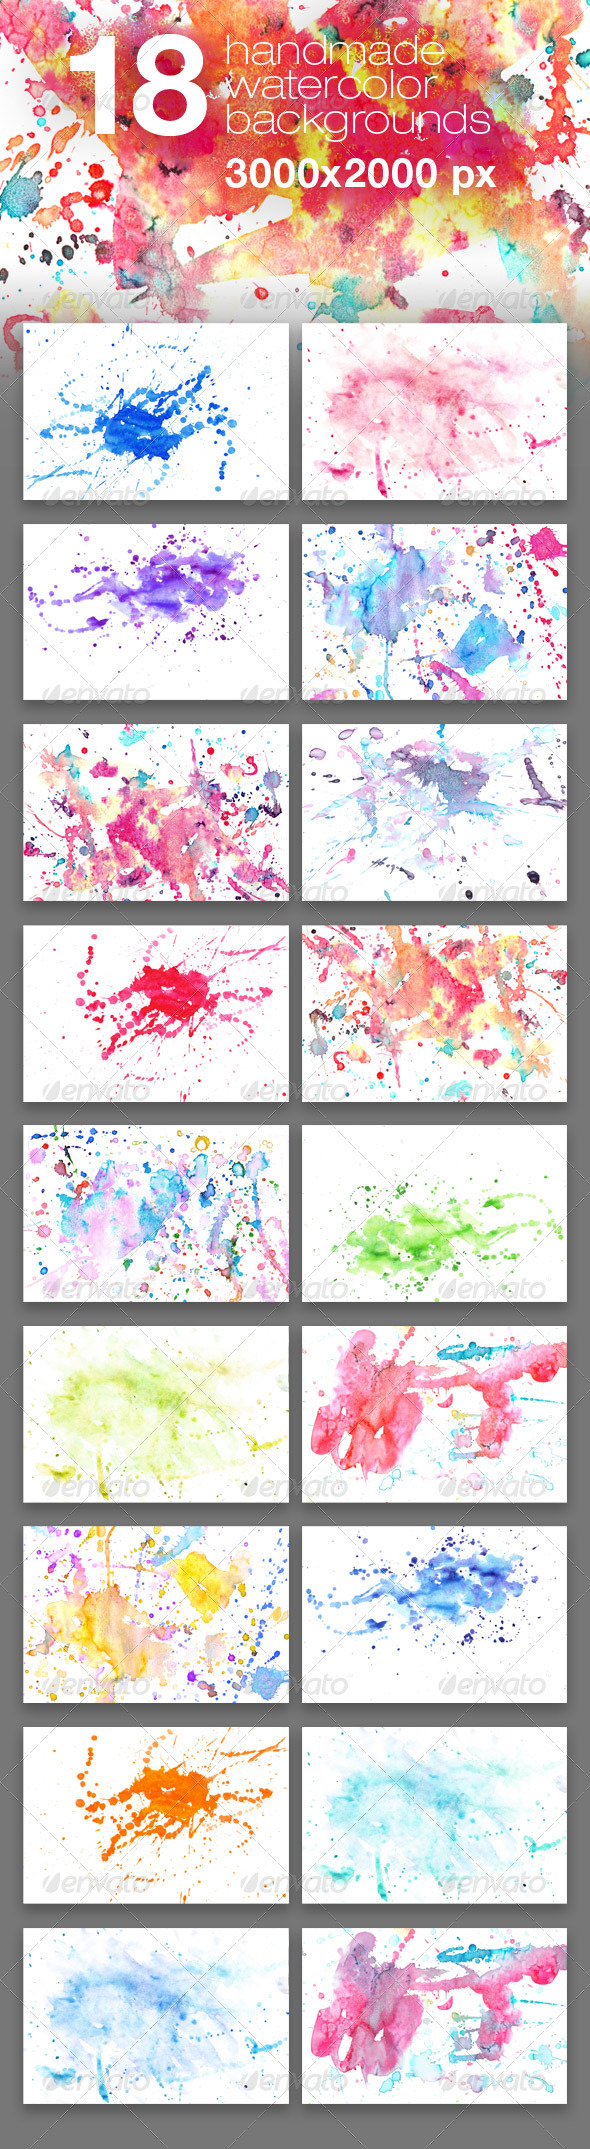 Graphic River 18 Handmade Watercolor Texture Backgrounds Textures -  Miscellaneous 428273